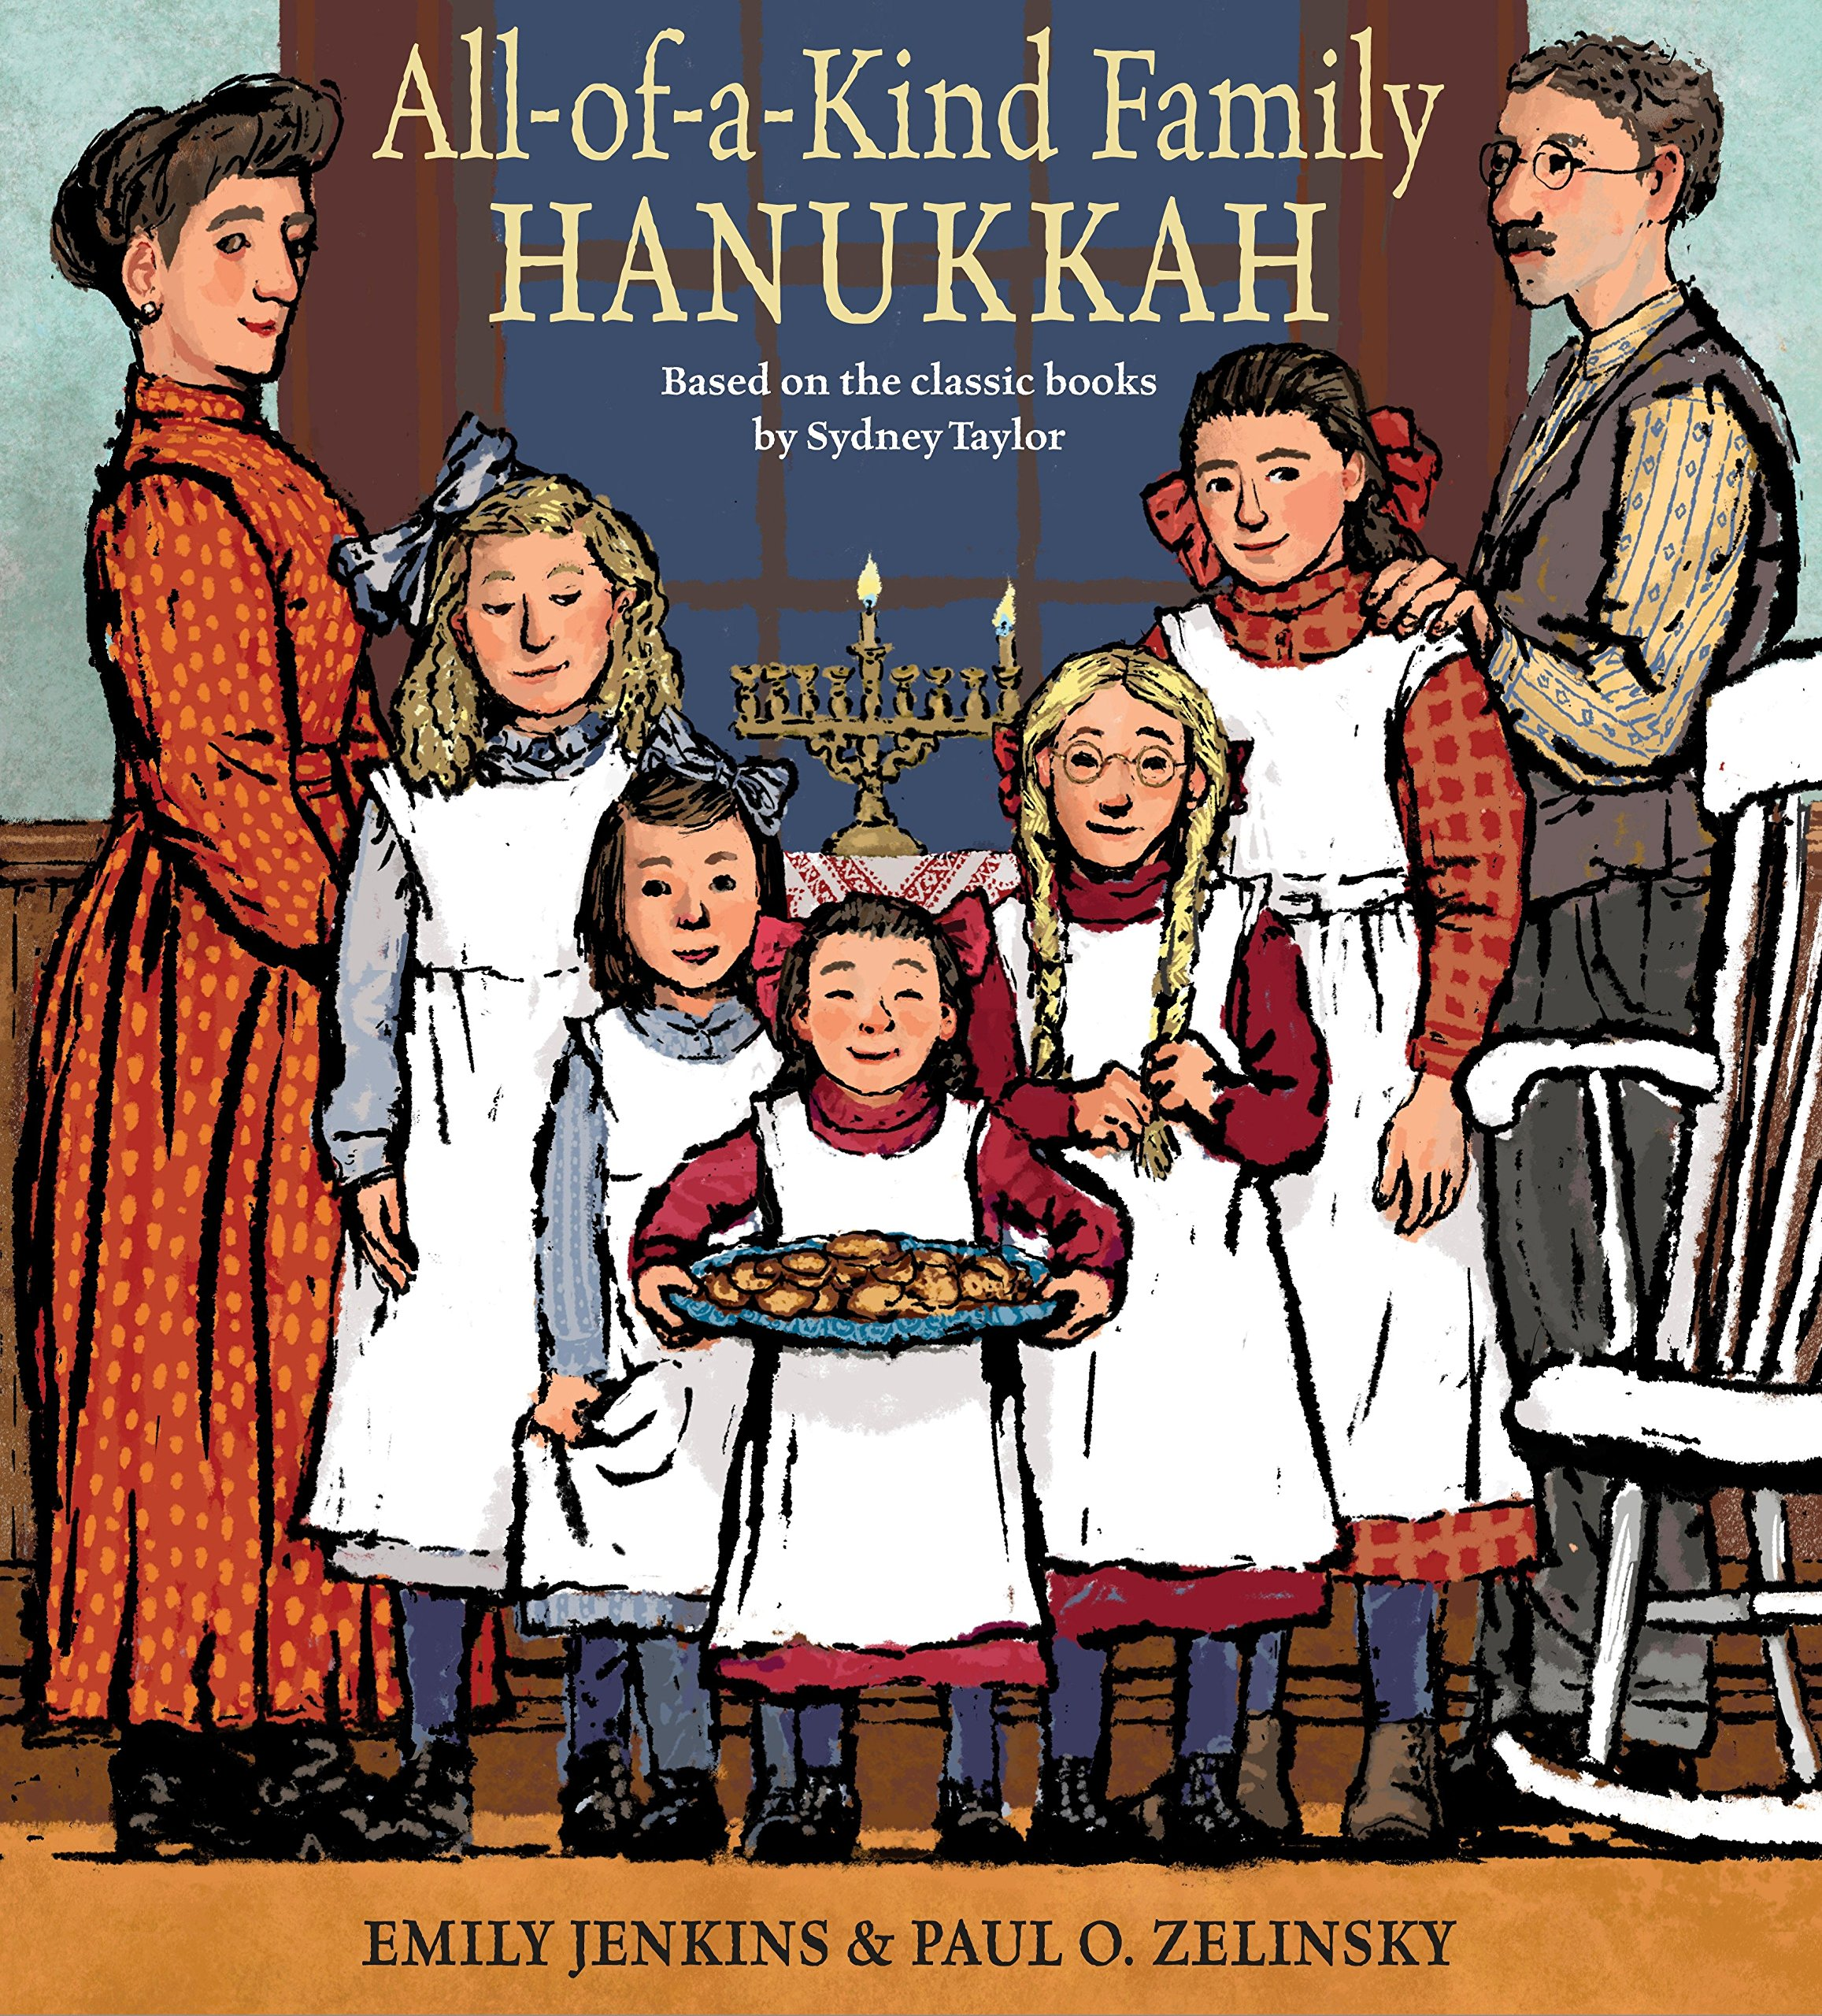 Image result for all of a kind family hanukkah amazon